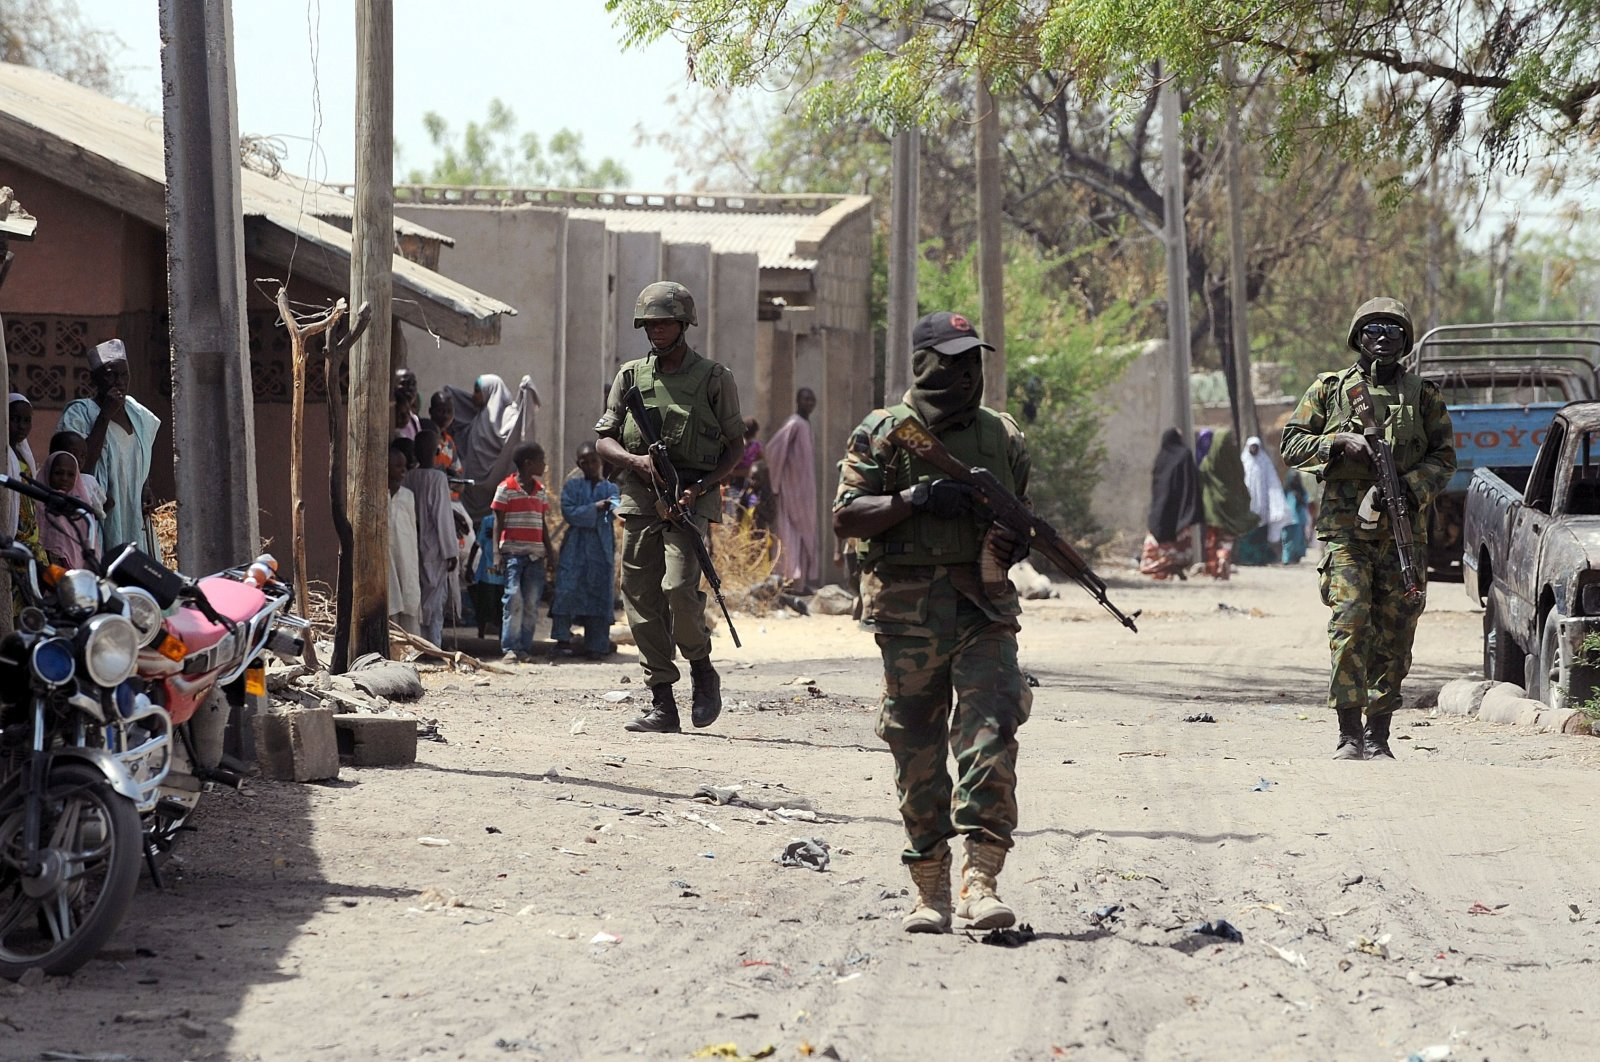 Nigerian troops patrolling in the streets of the remote northeast town of Baga, Borno State, Nigeria, March 31, 2014. (AFP Photo)